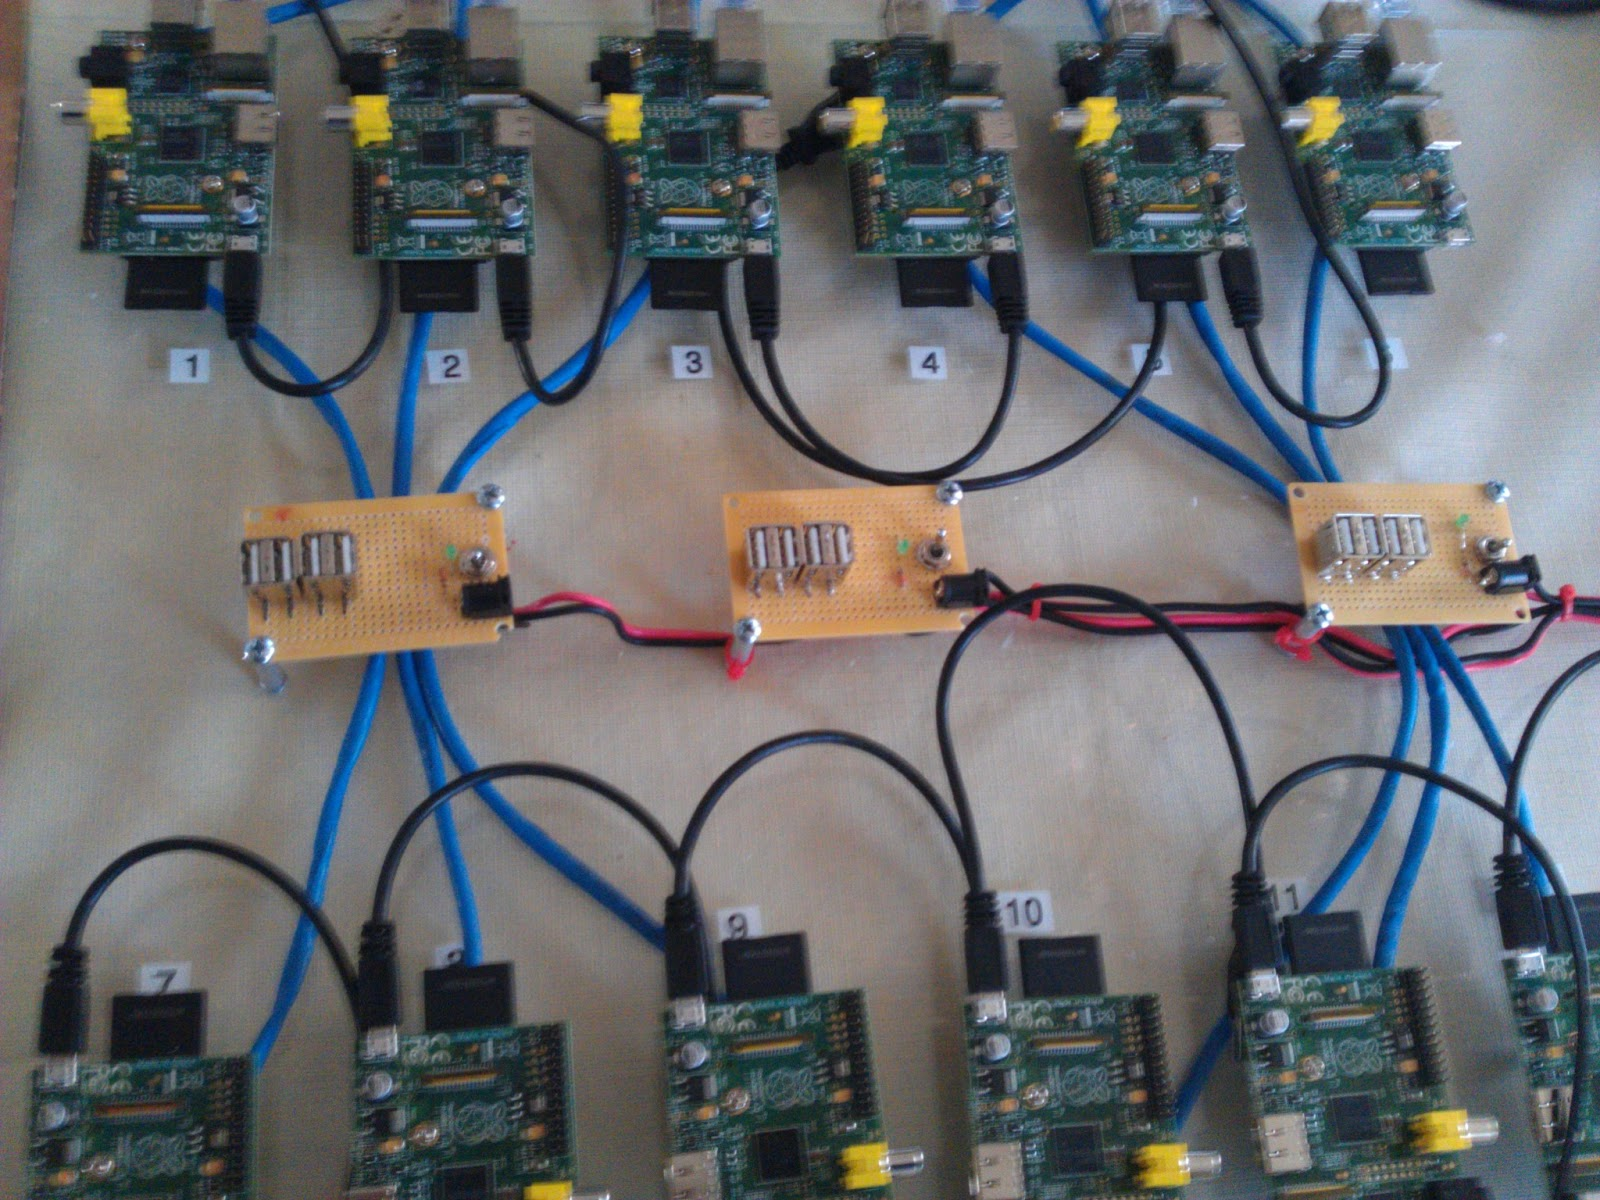 Technology Toolshed: Mounting the power boards